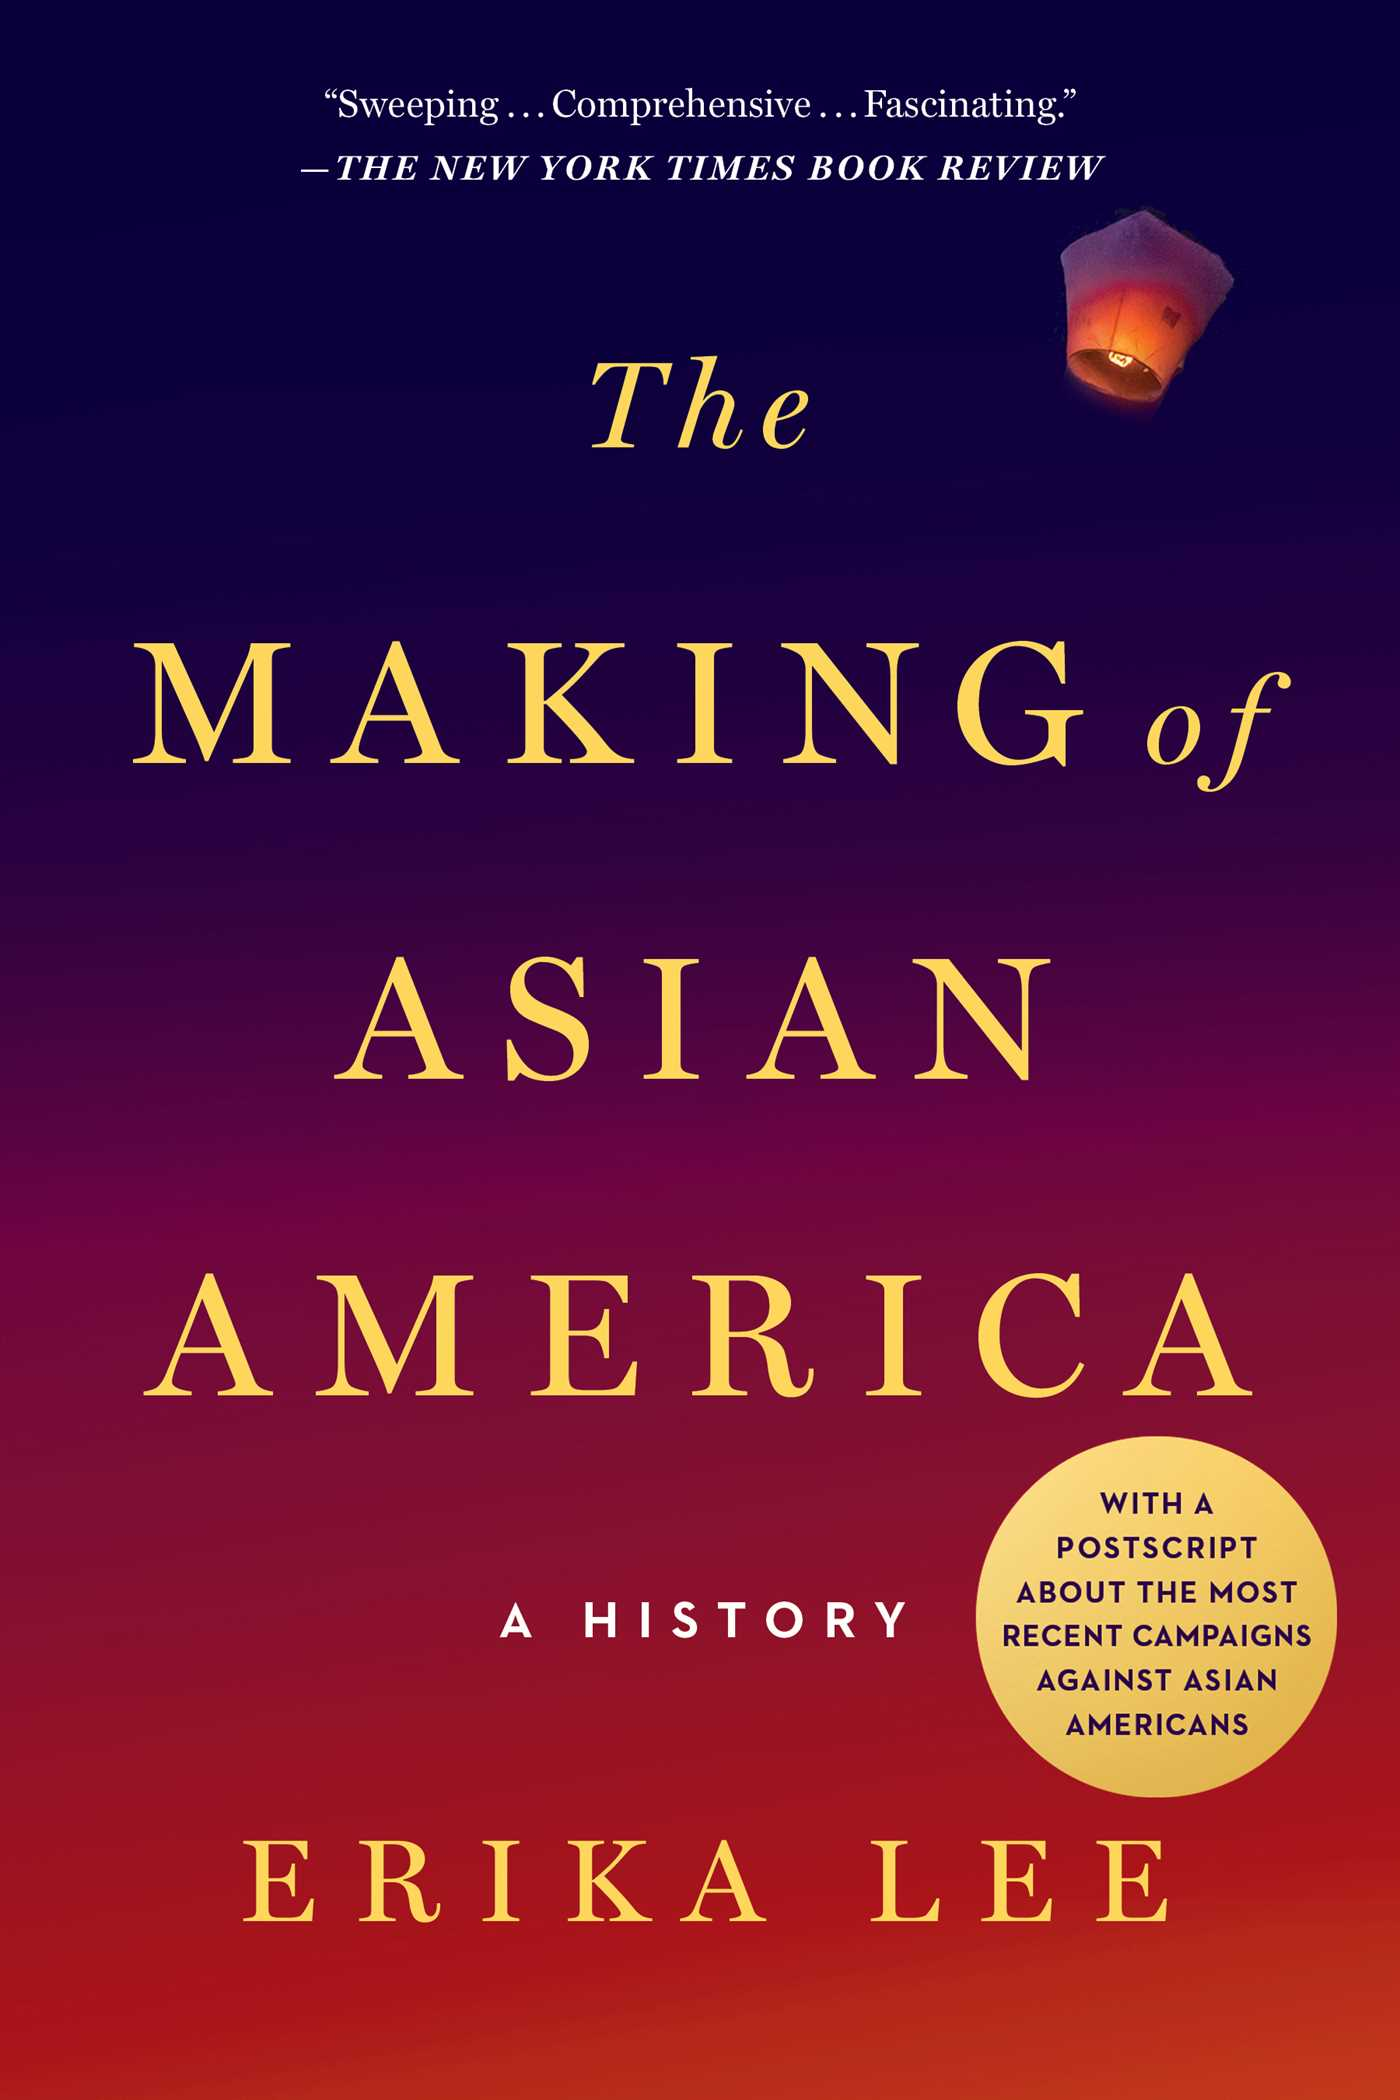 The making of asian america 9781476739410 hr